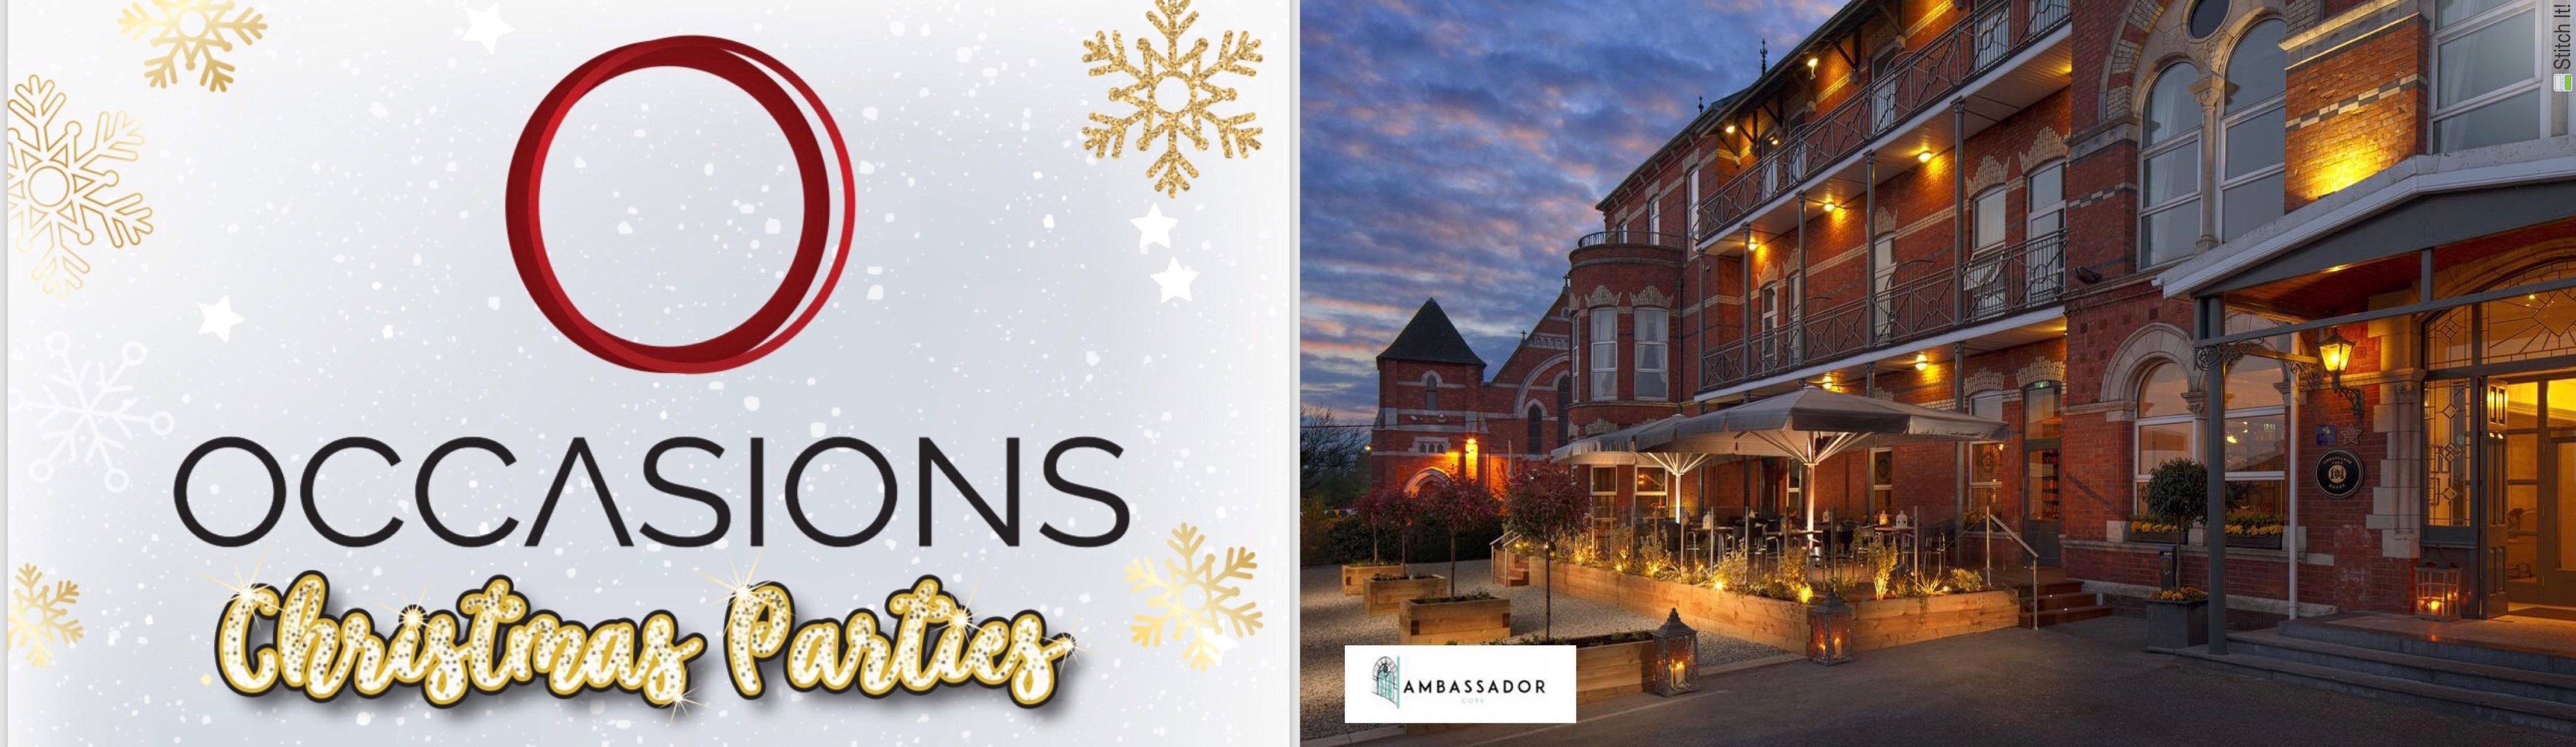 Occasions Christmas Parties - The Ambassador Hotel